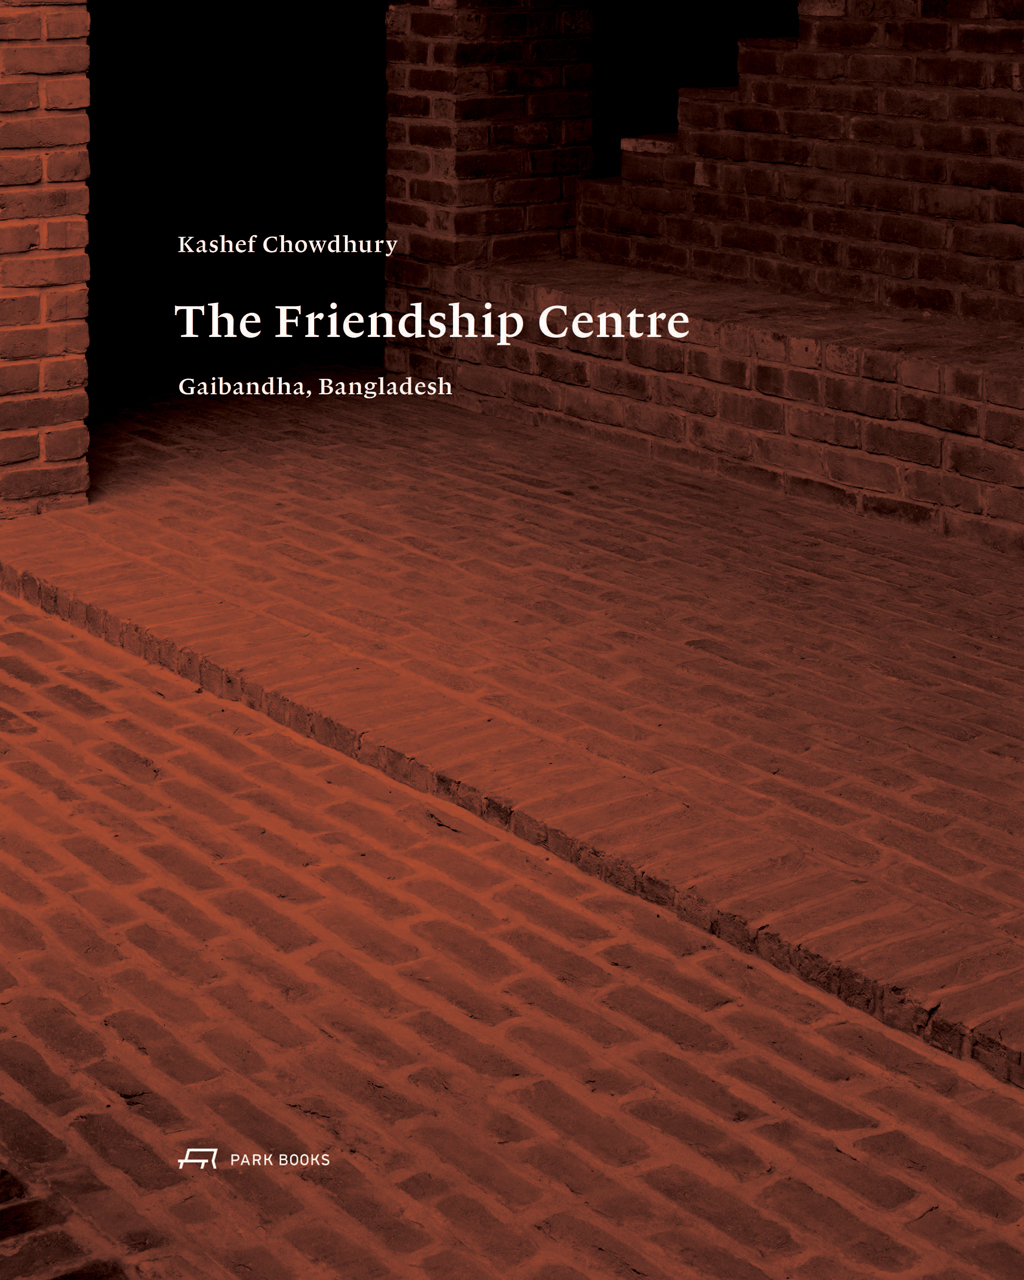 Kashef Chowdhury-The Friendship Centre: Gaibandha, Bangladesh